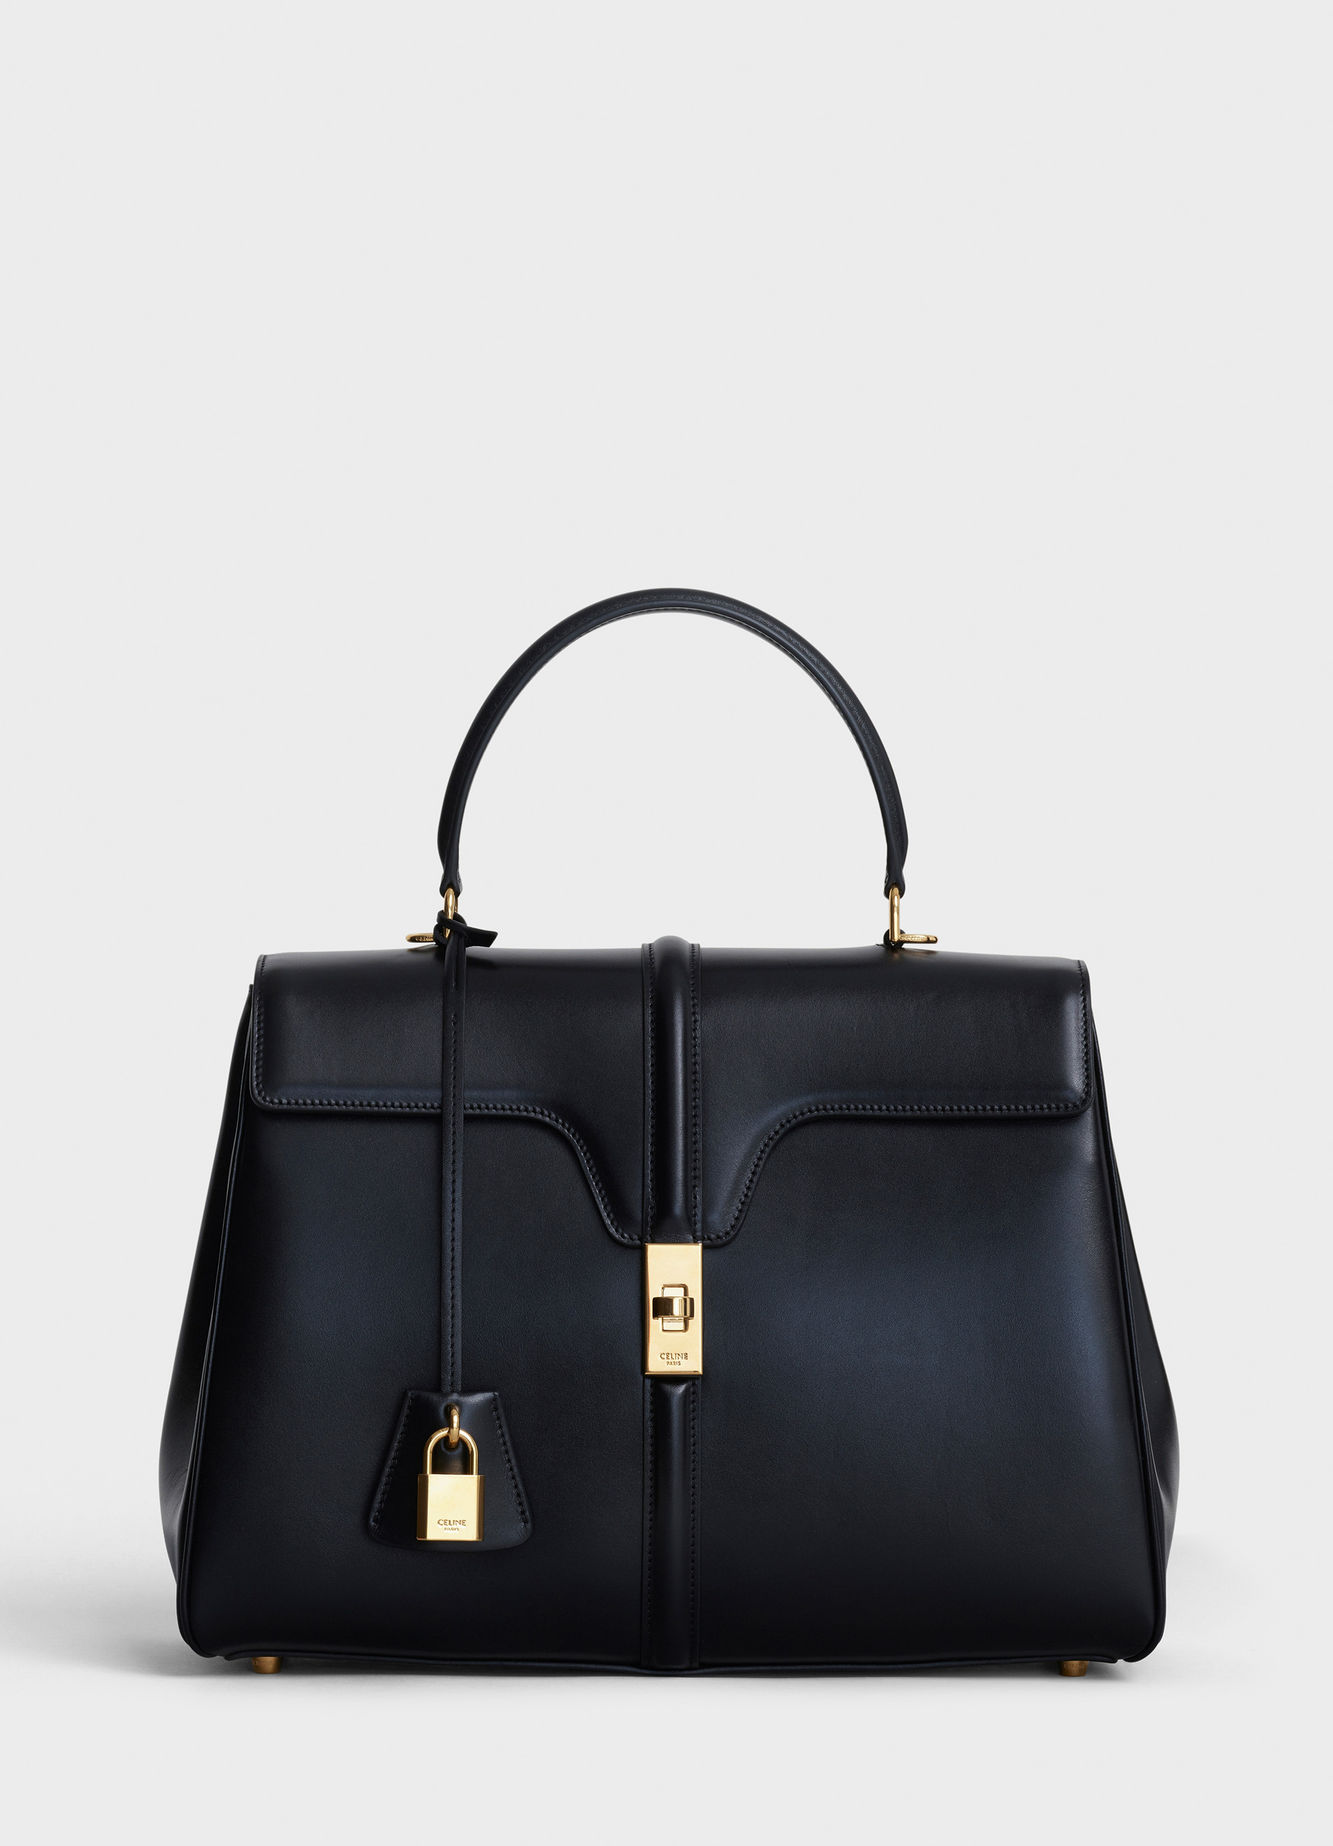 CELINE MEDIUM 16 BAG IN SATINATED CALFSKIN A187373 black